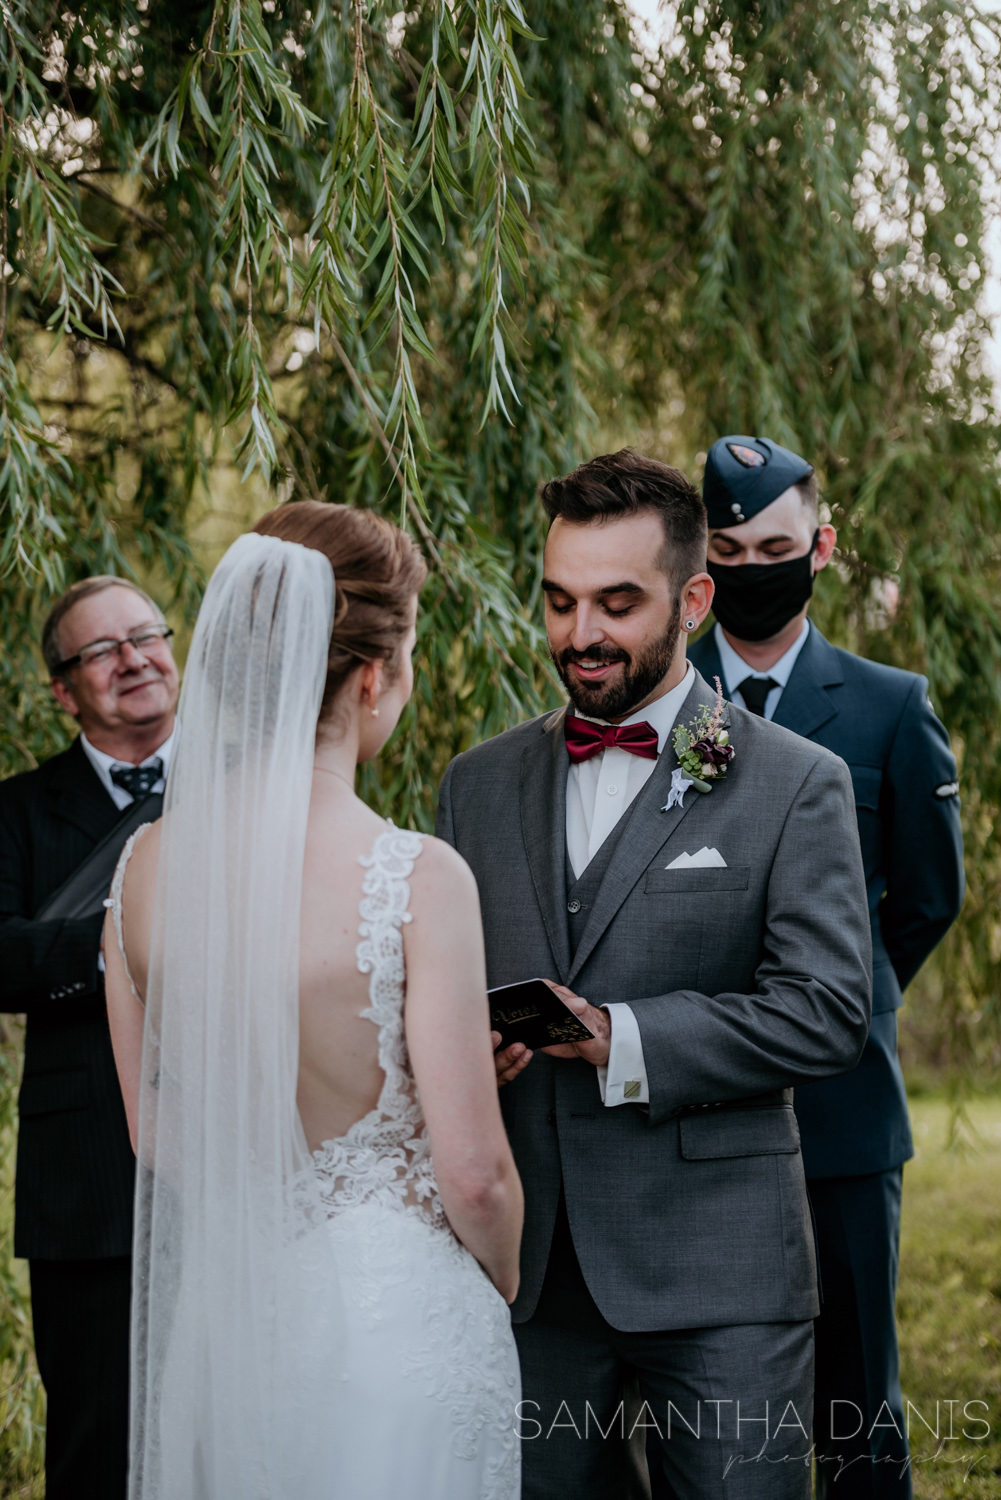 L'Escale music teacher reciting his vows to his soon to be bride. Ceremony held in Walter Baker Park Kanata, Ontario